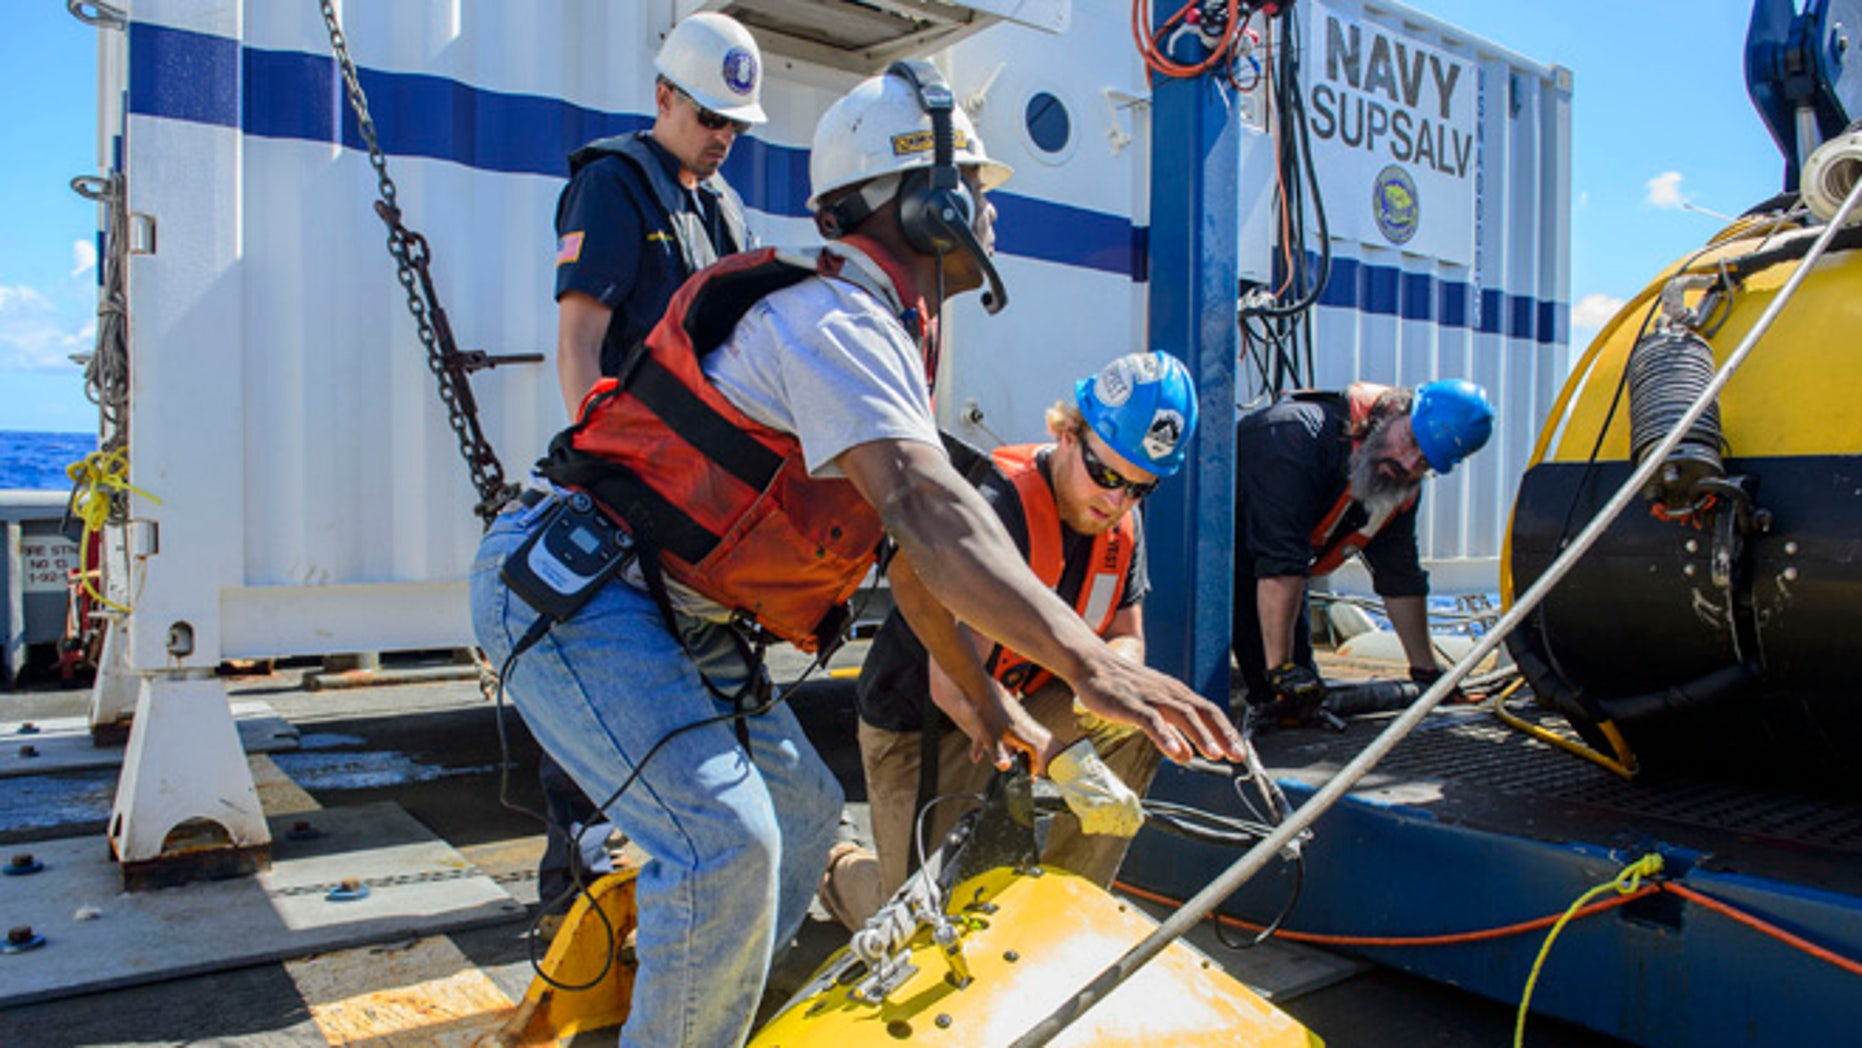 In this Oct. 24, 2015, photo, contractors and Lt. Cmdr. Daniel Neverosky retrieve and secure the tow pinger locater aboard the USNS Apache. USNS Apache departed Norfolk, Va., on Oct. 19, to begin searching for wreckage from the missing cargo ship El Faro. El Faro lost power and went down east of the Bahamas during Hurricane Joaquin. (John Paul Kotara II/Navy via AP)